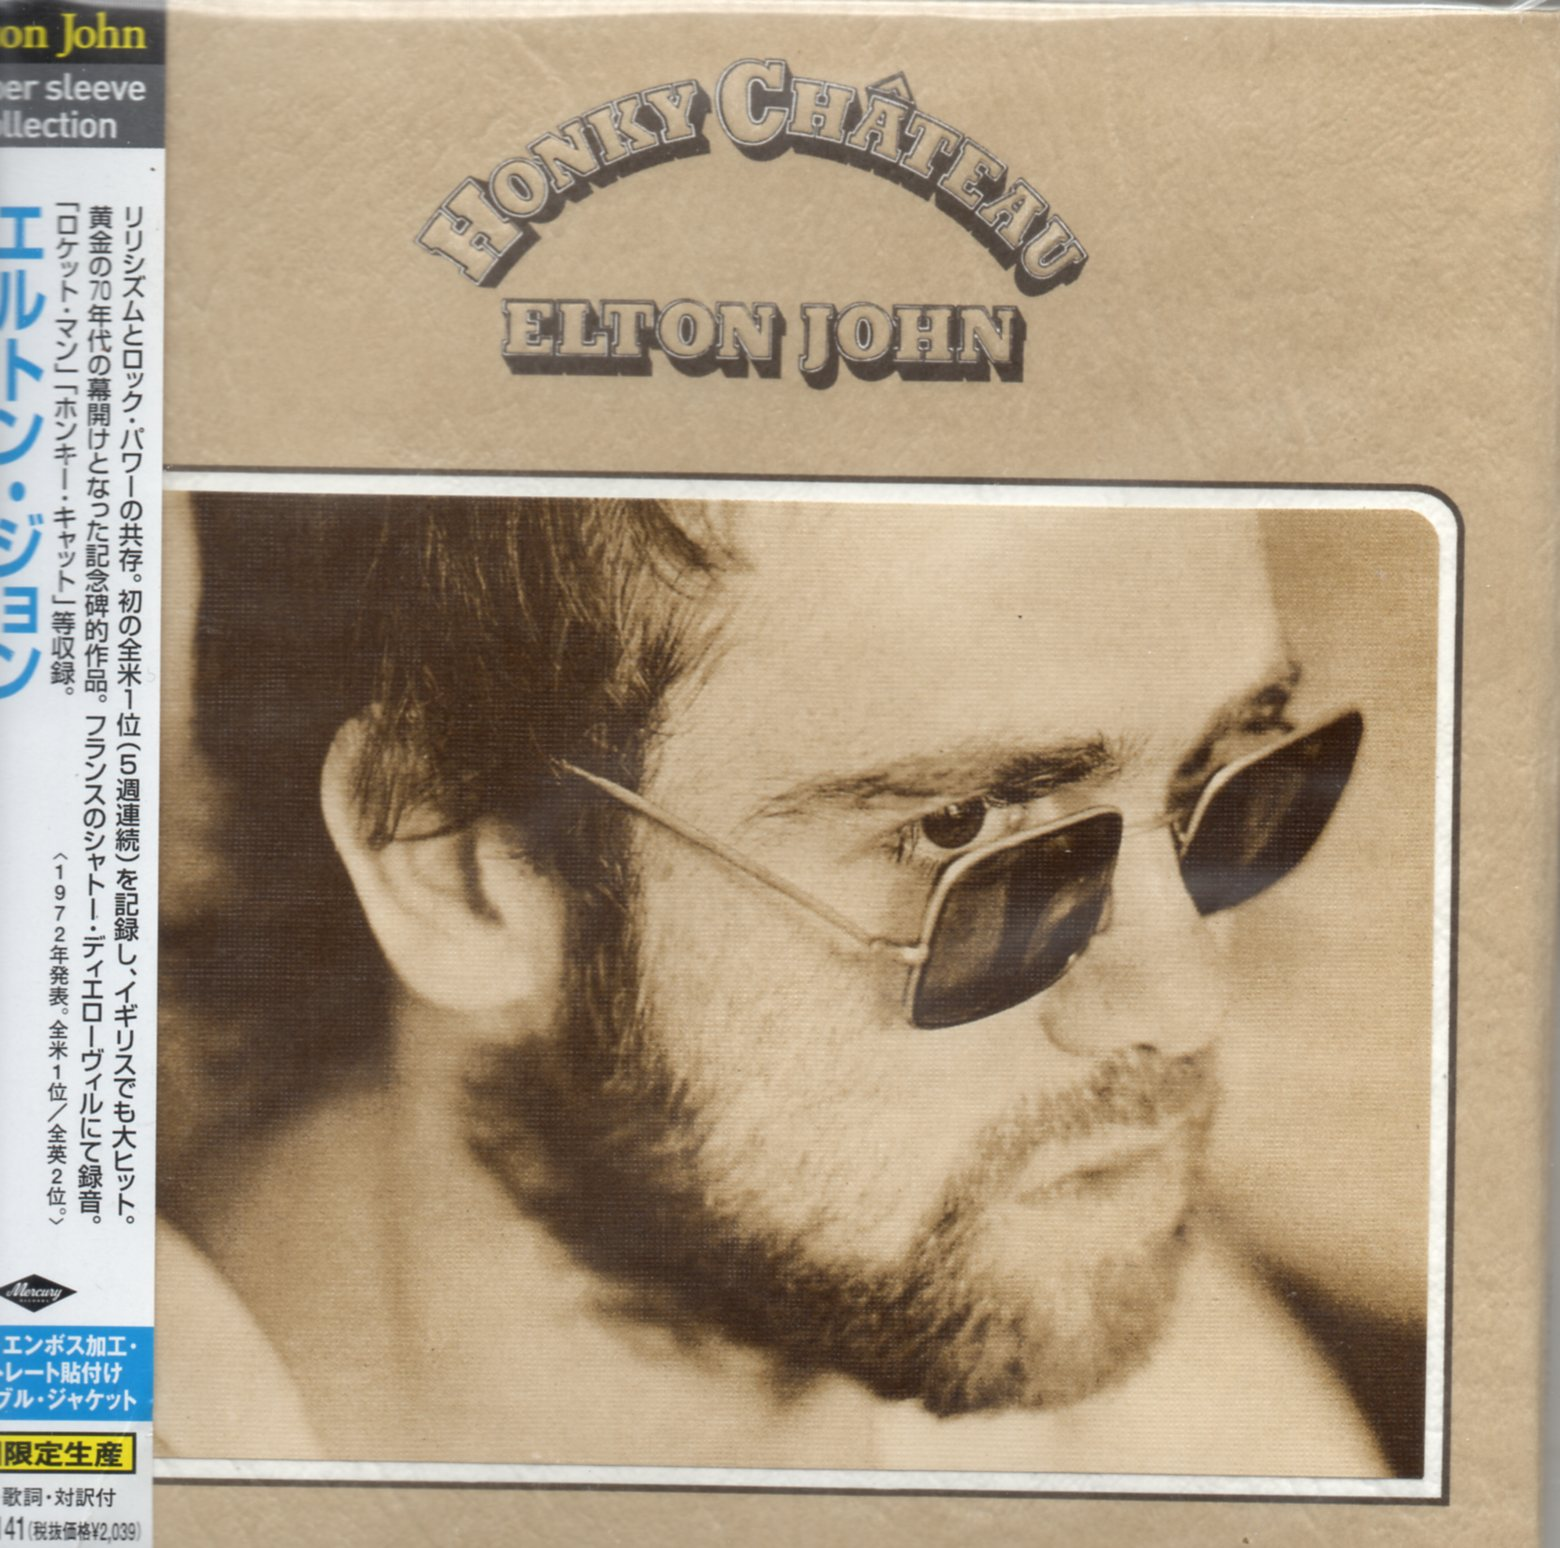 ELTON JOHN - Honky Château - MINI LP JAPAN 11-track Paper Sleeve - CD